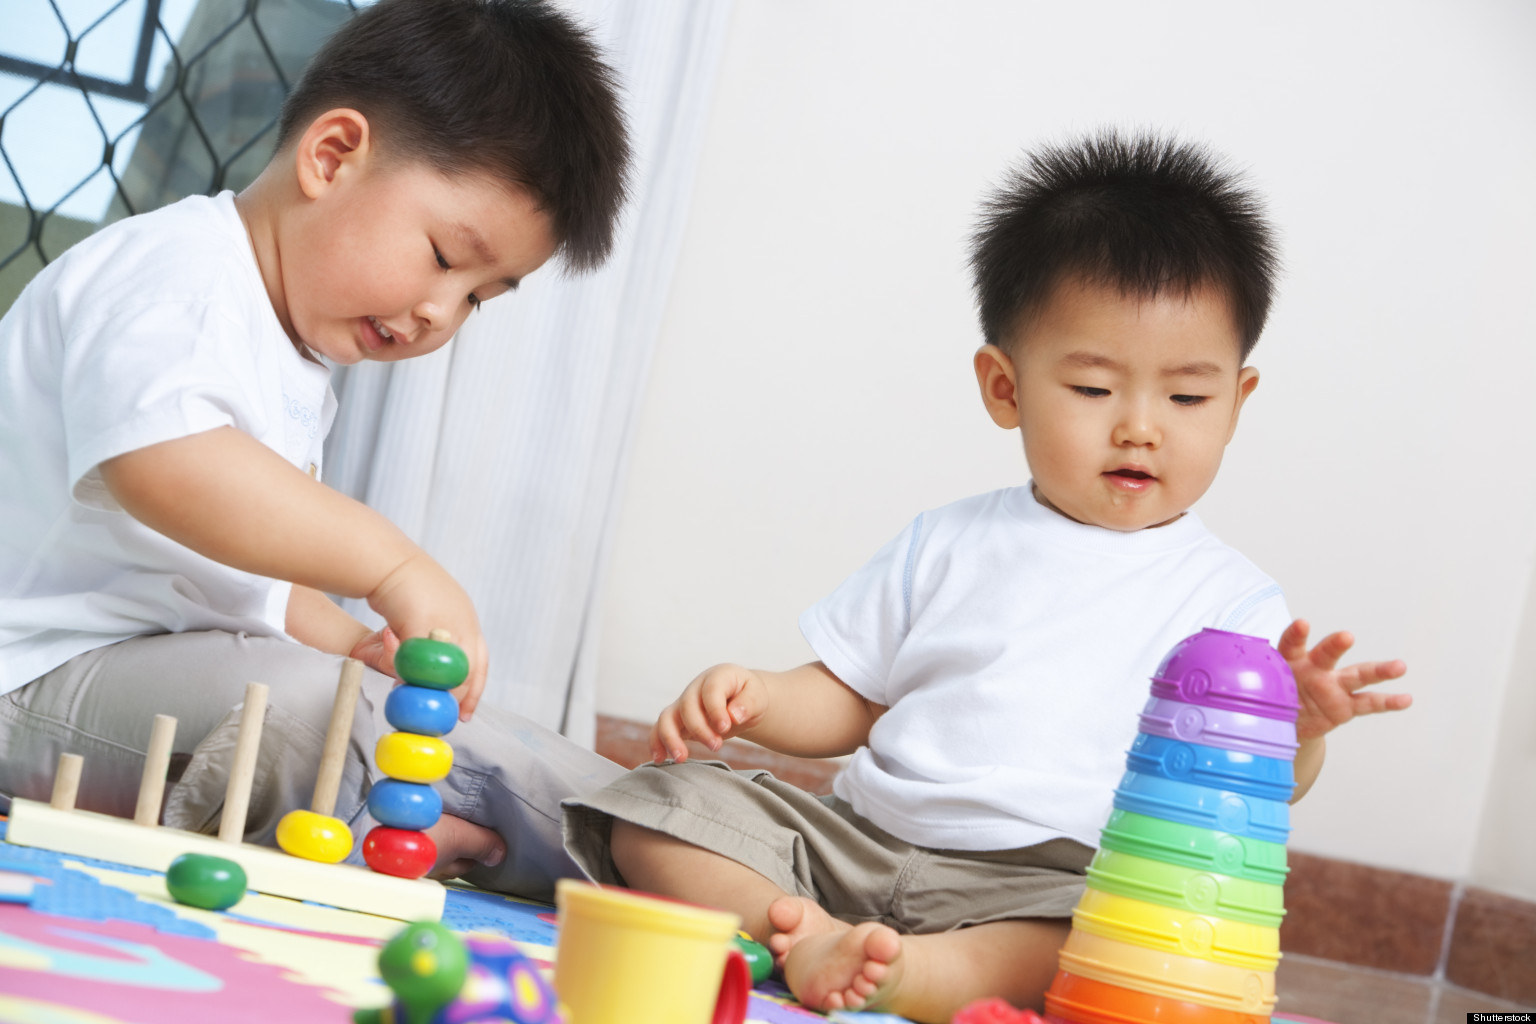 Kids And Sharing: 3-Year-Olds Know They Should, But Don't ...